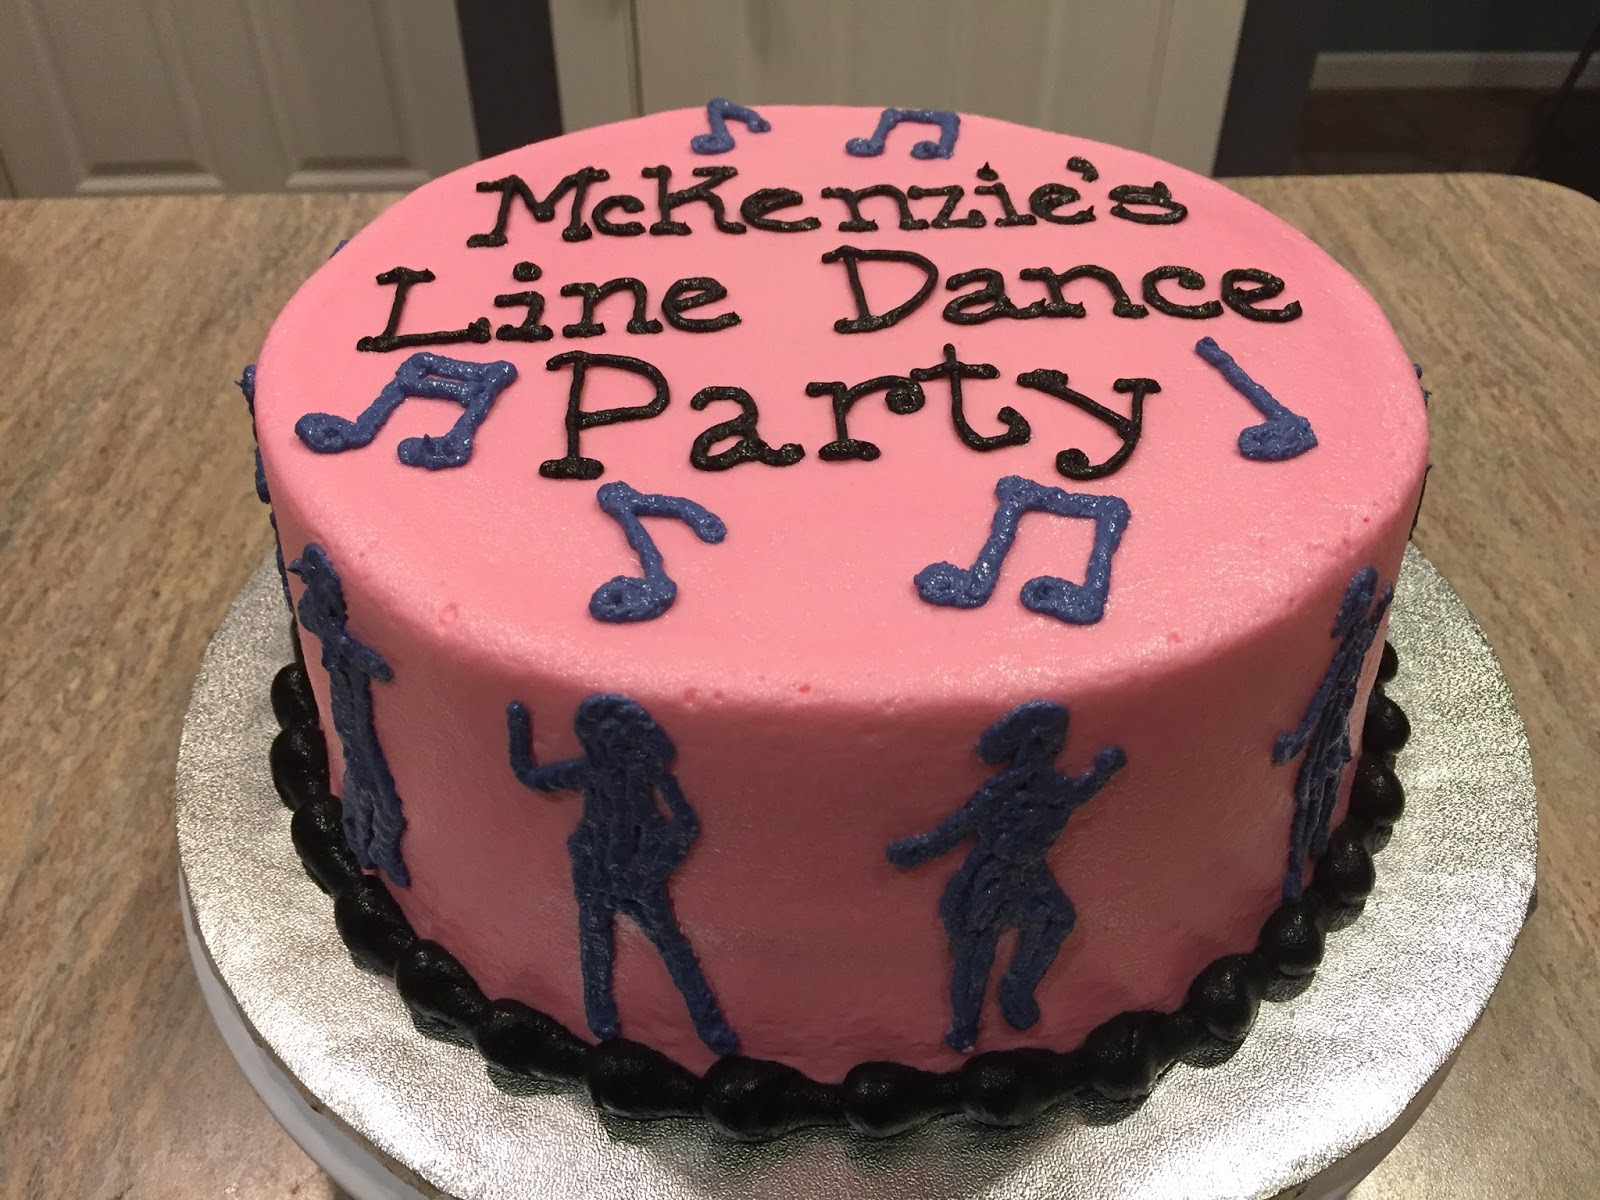 A Counselors Confections Line Dance Party Birthday Cake